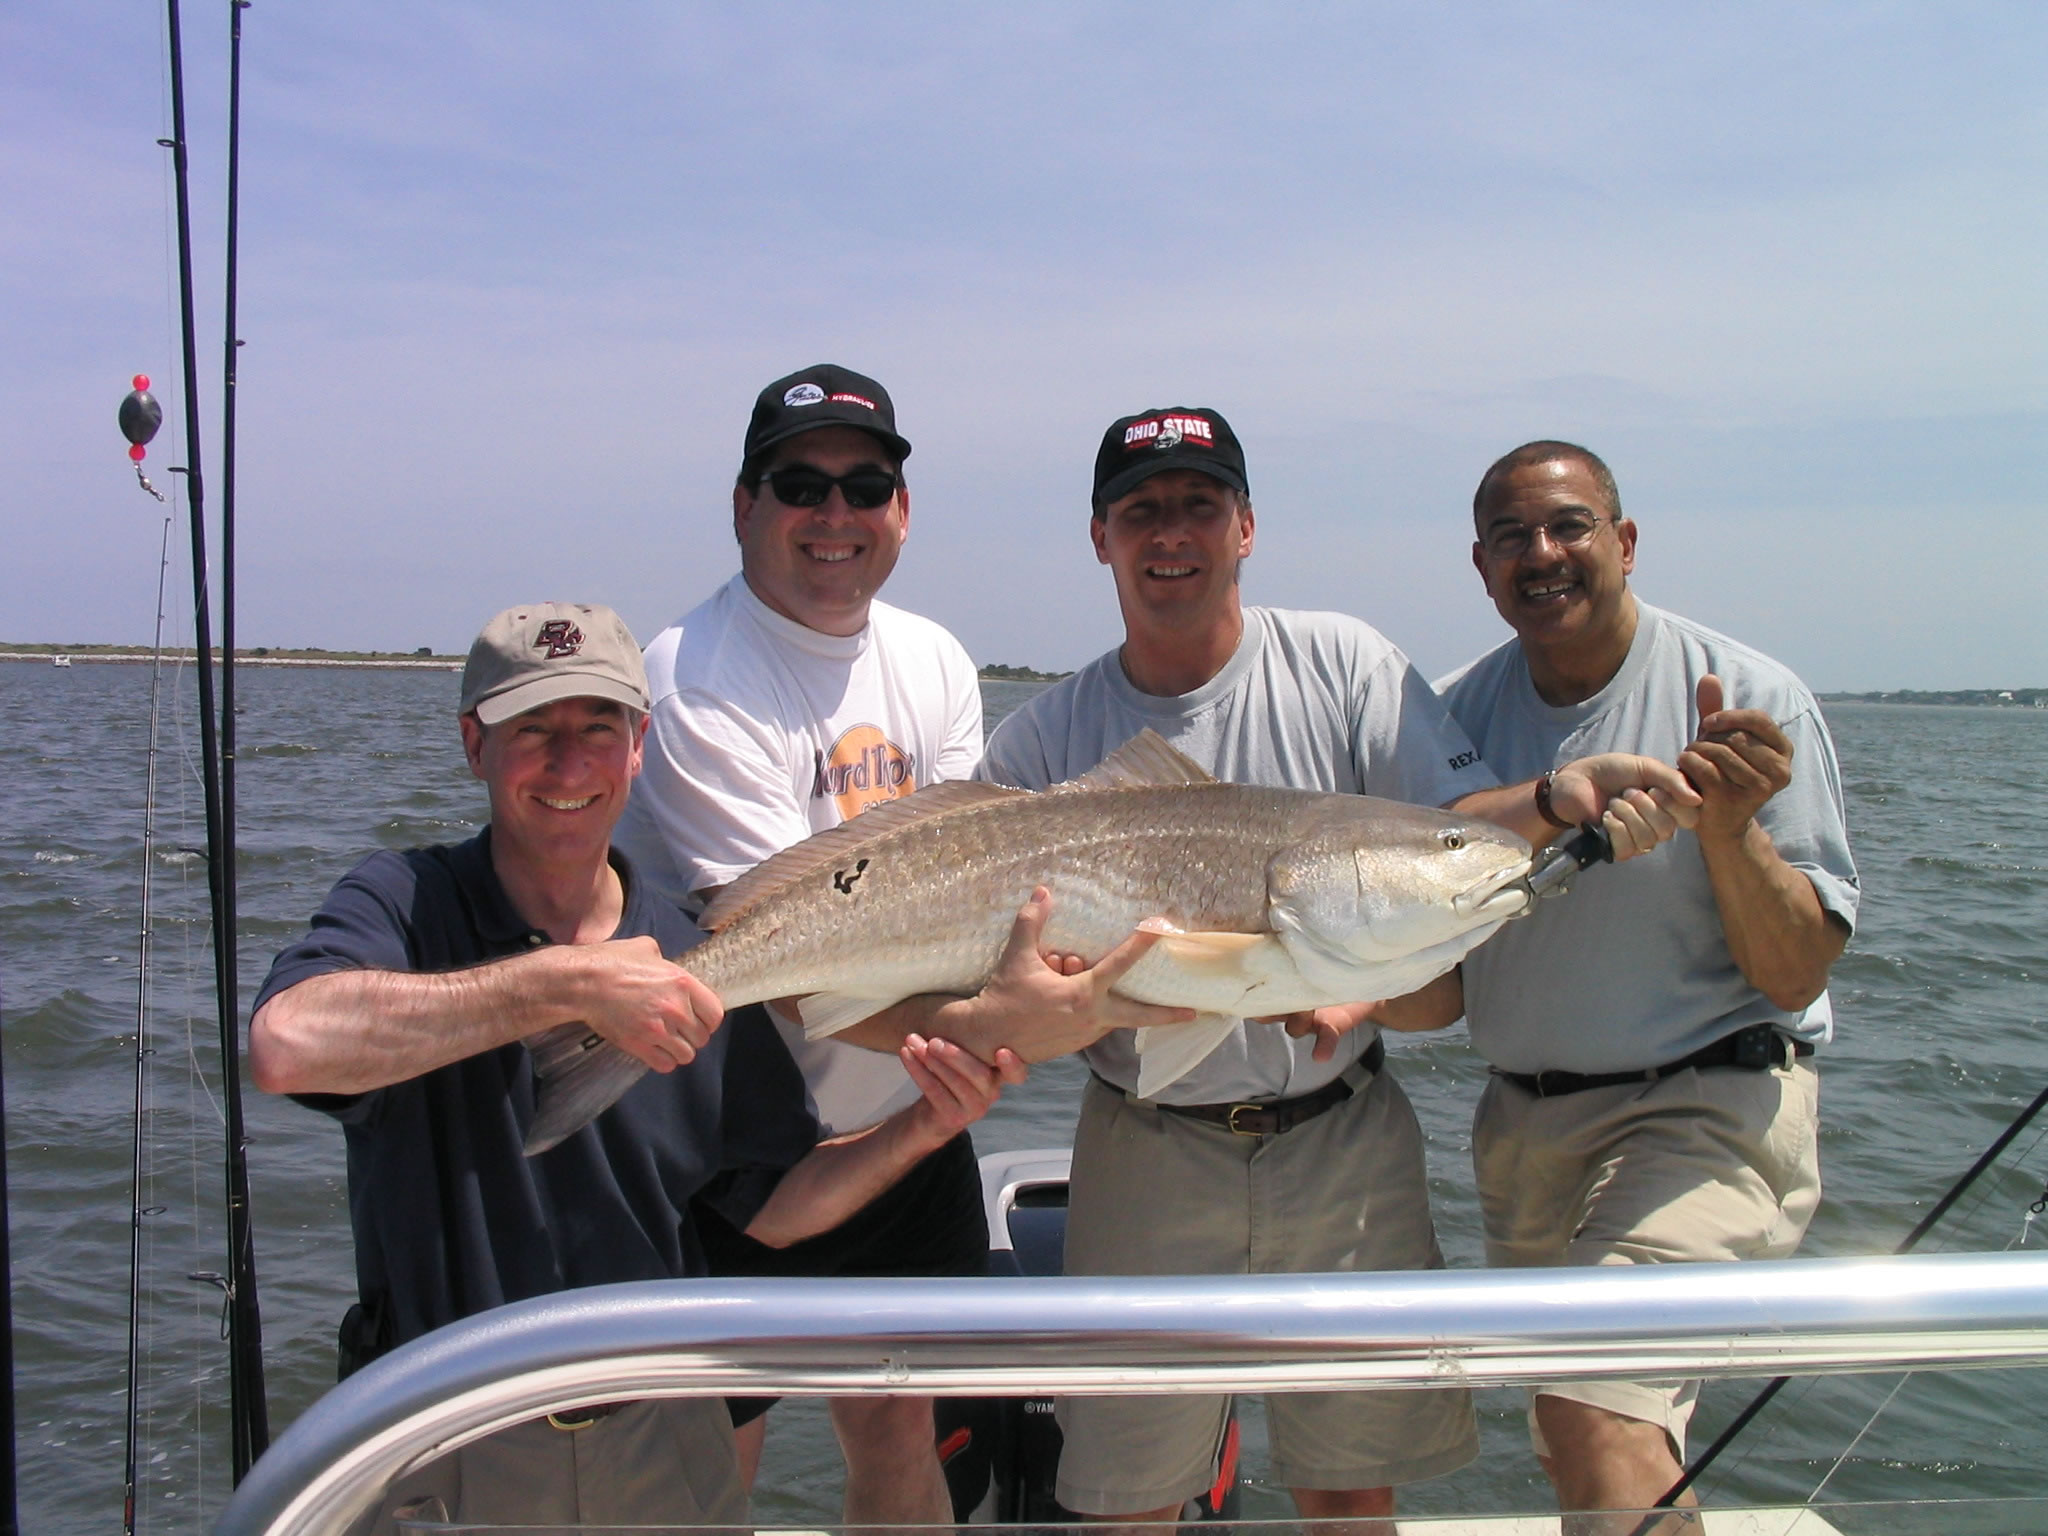 Fishing photos of saint augustine florida charters for St augustine fishing